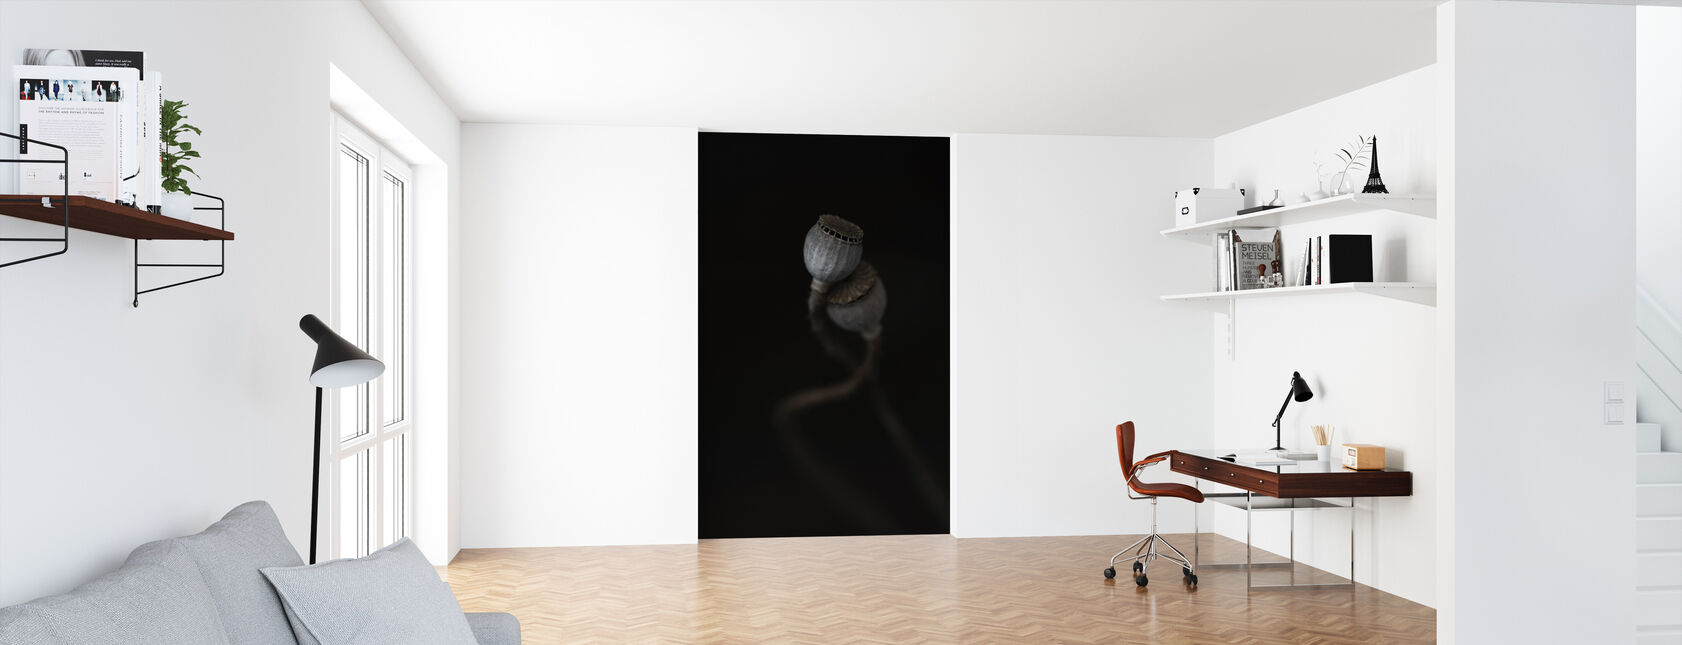 Twogether - Wallpaper - Office